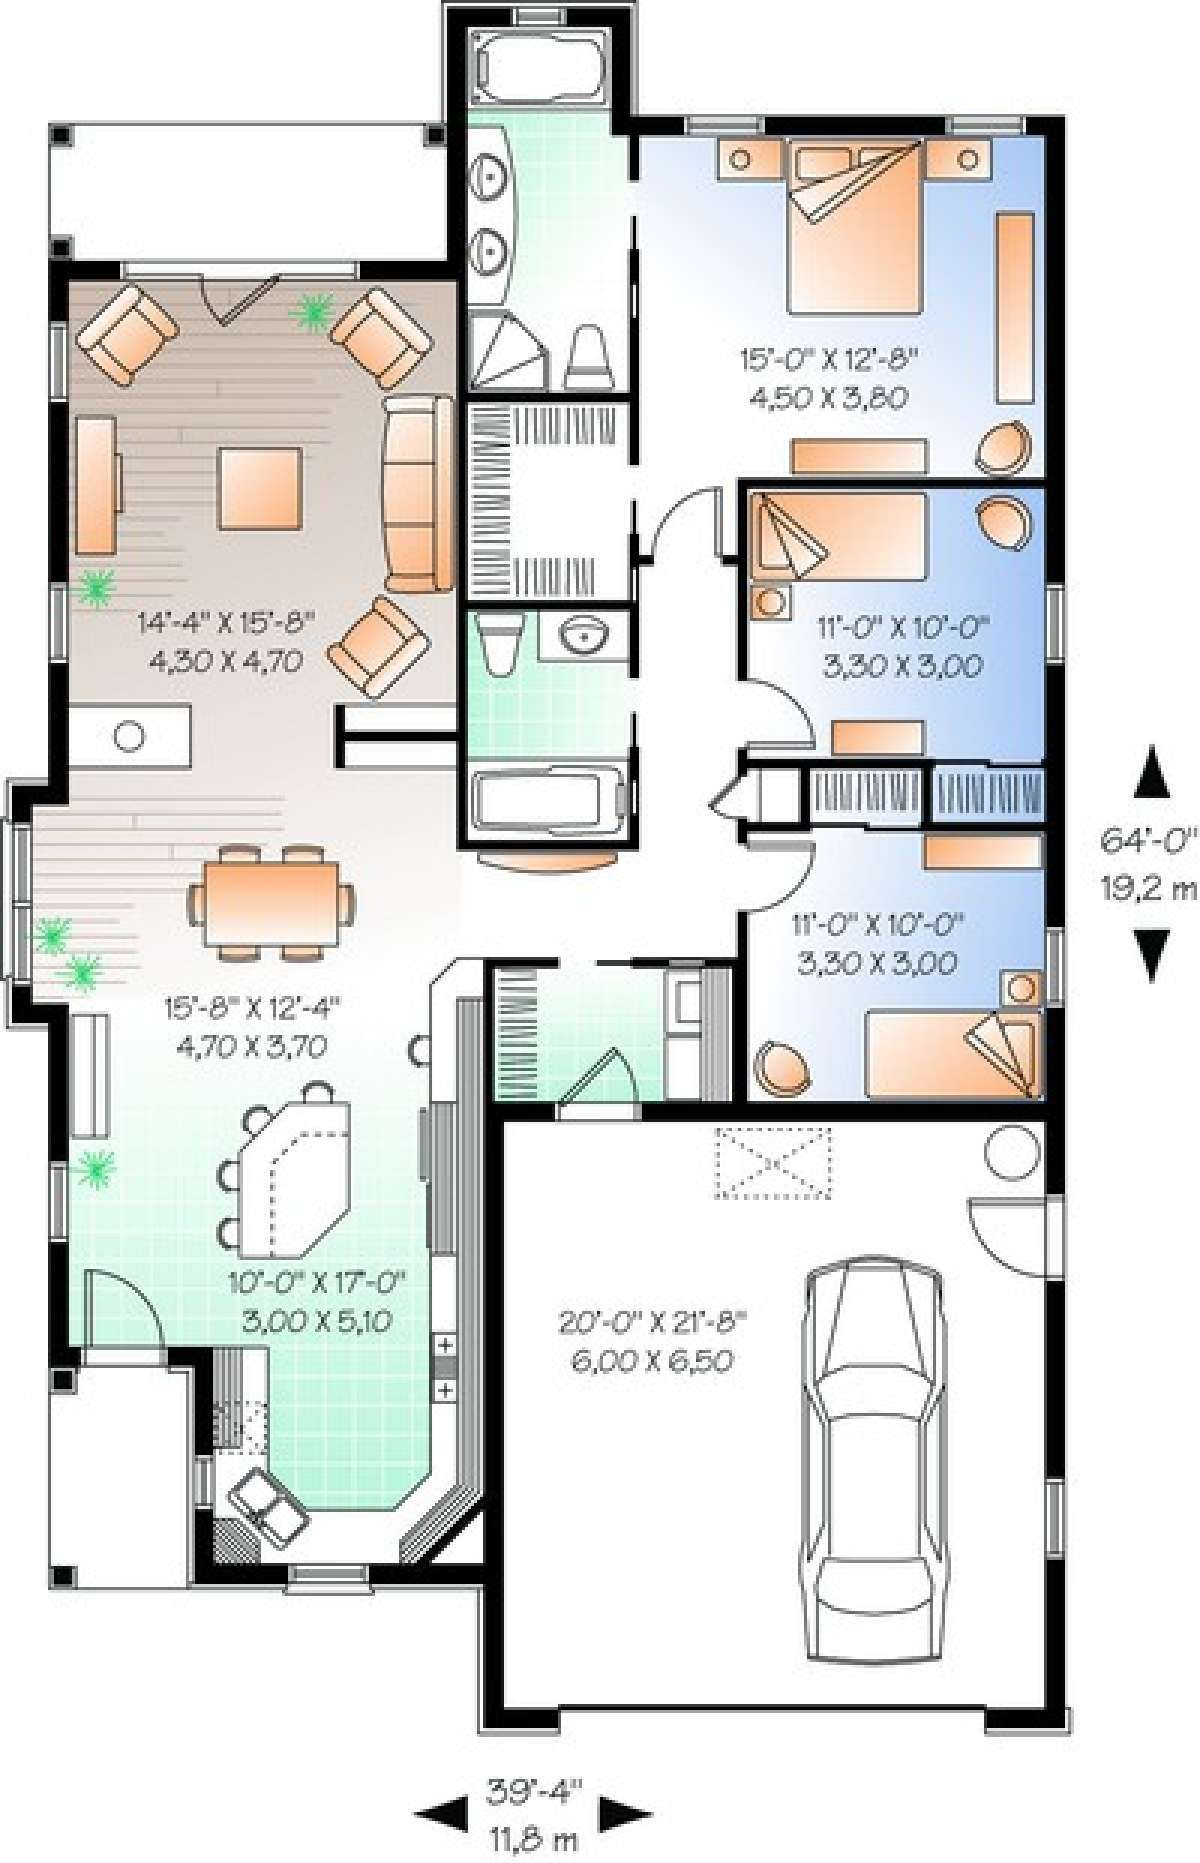 House Plan 034 00199 Traditional Plan 1 634 Square Feet 3 Bedrooms 2 Bathrooms In 2021 Single Storey House Plans Narrow House Plans Bungalow House Plans